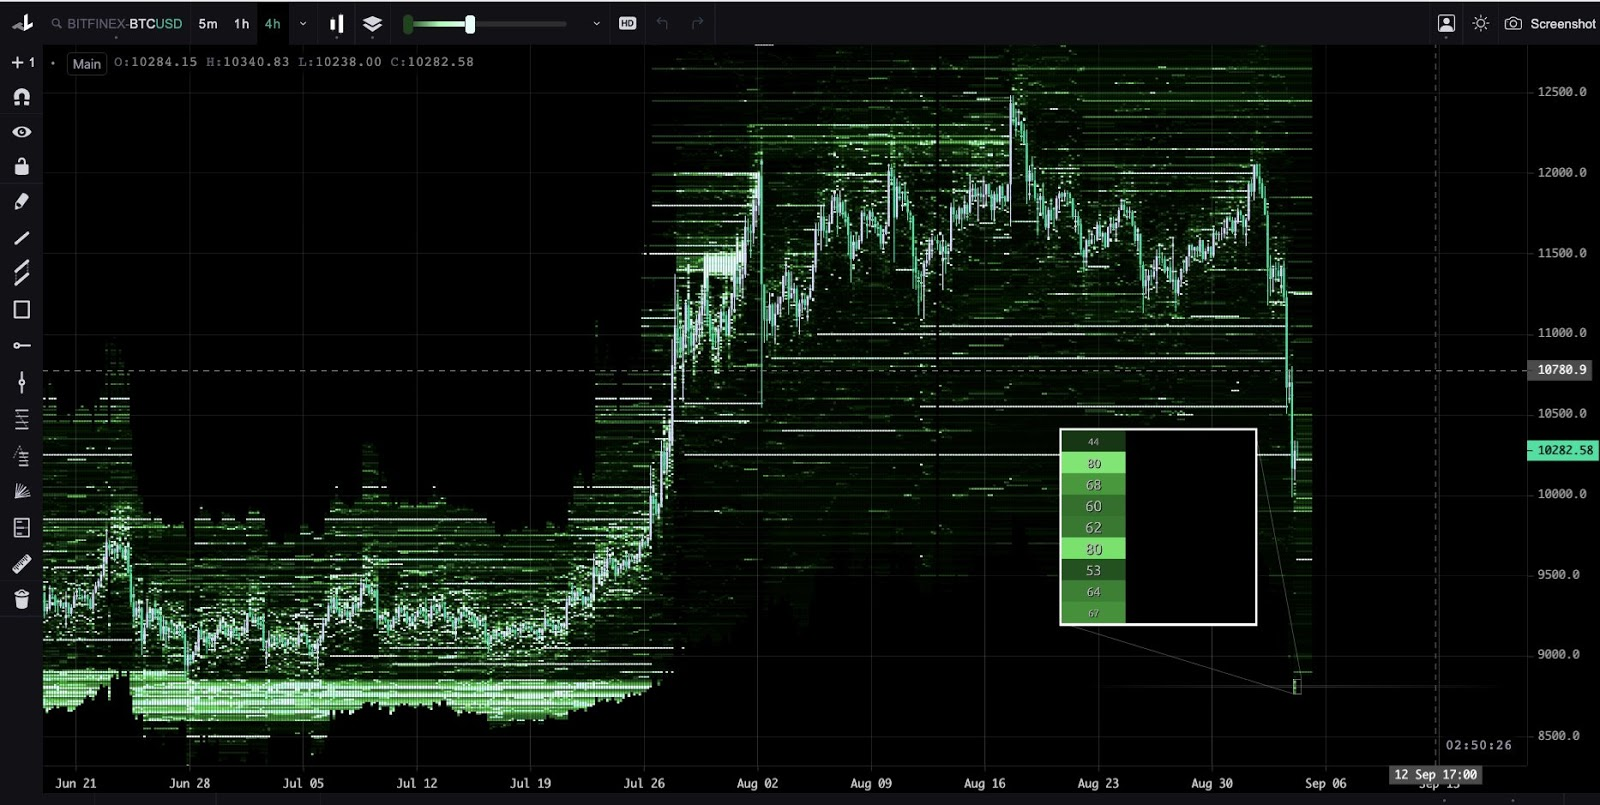 A massive Bitcoin buy order at $8,800 on Bitfinex